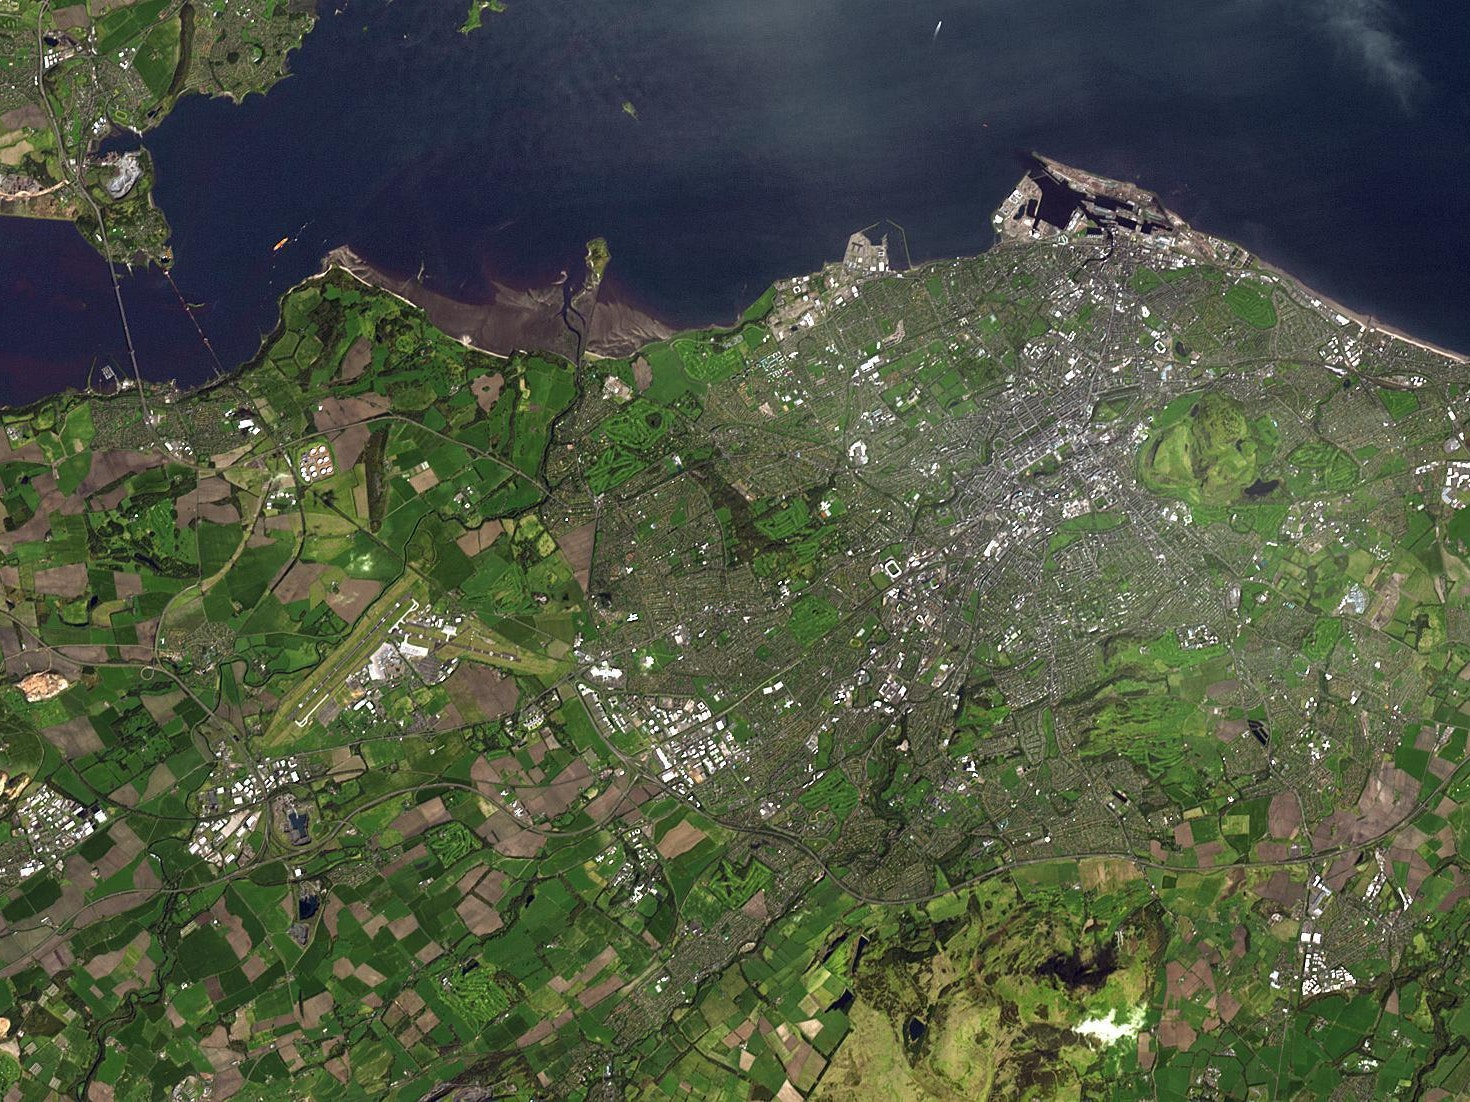 Edinburgh looks green from space.